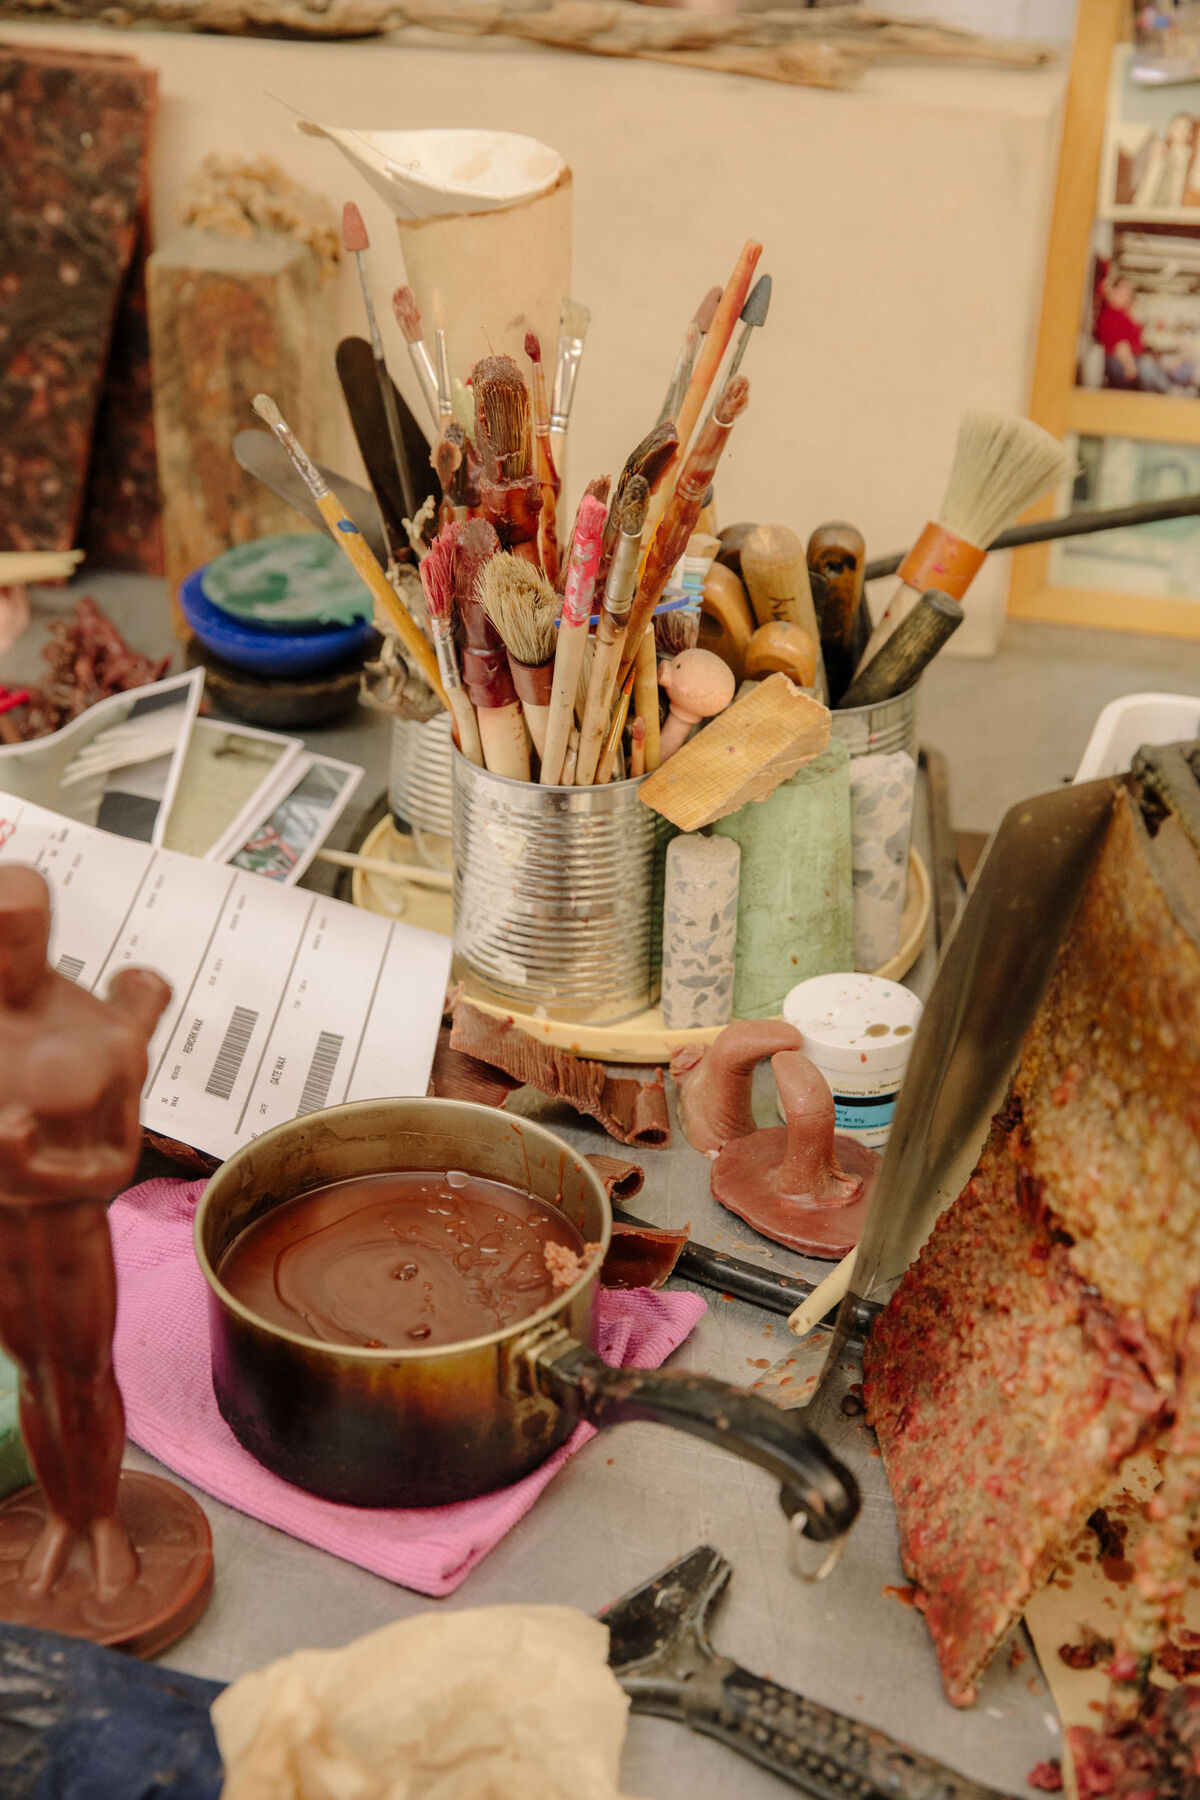 Supplies for wax rework. Photo by Ricky Rhodes for Artsy.